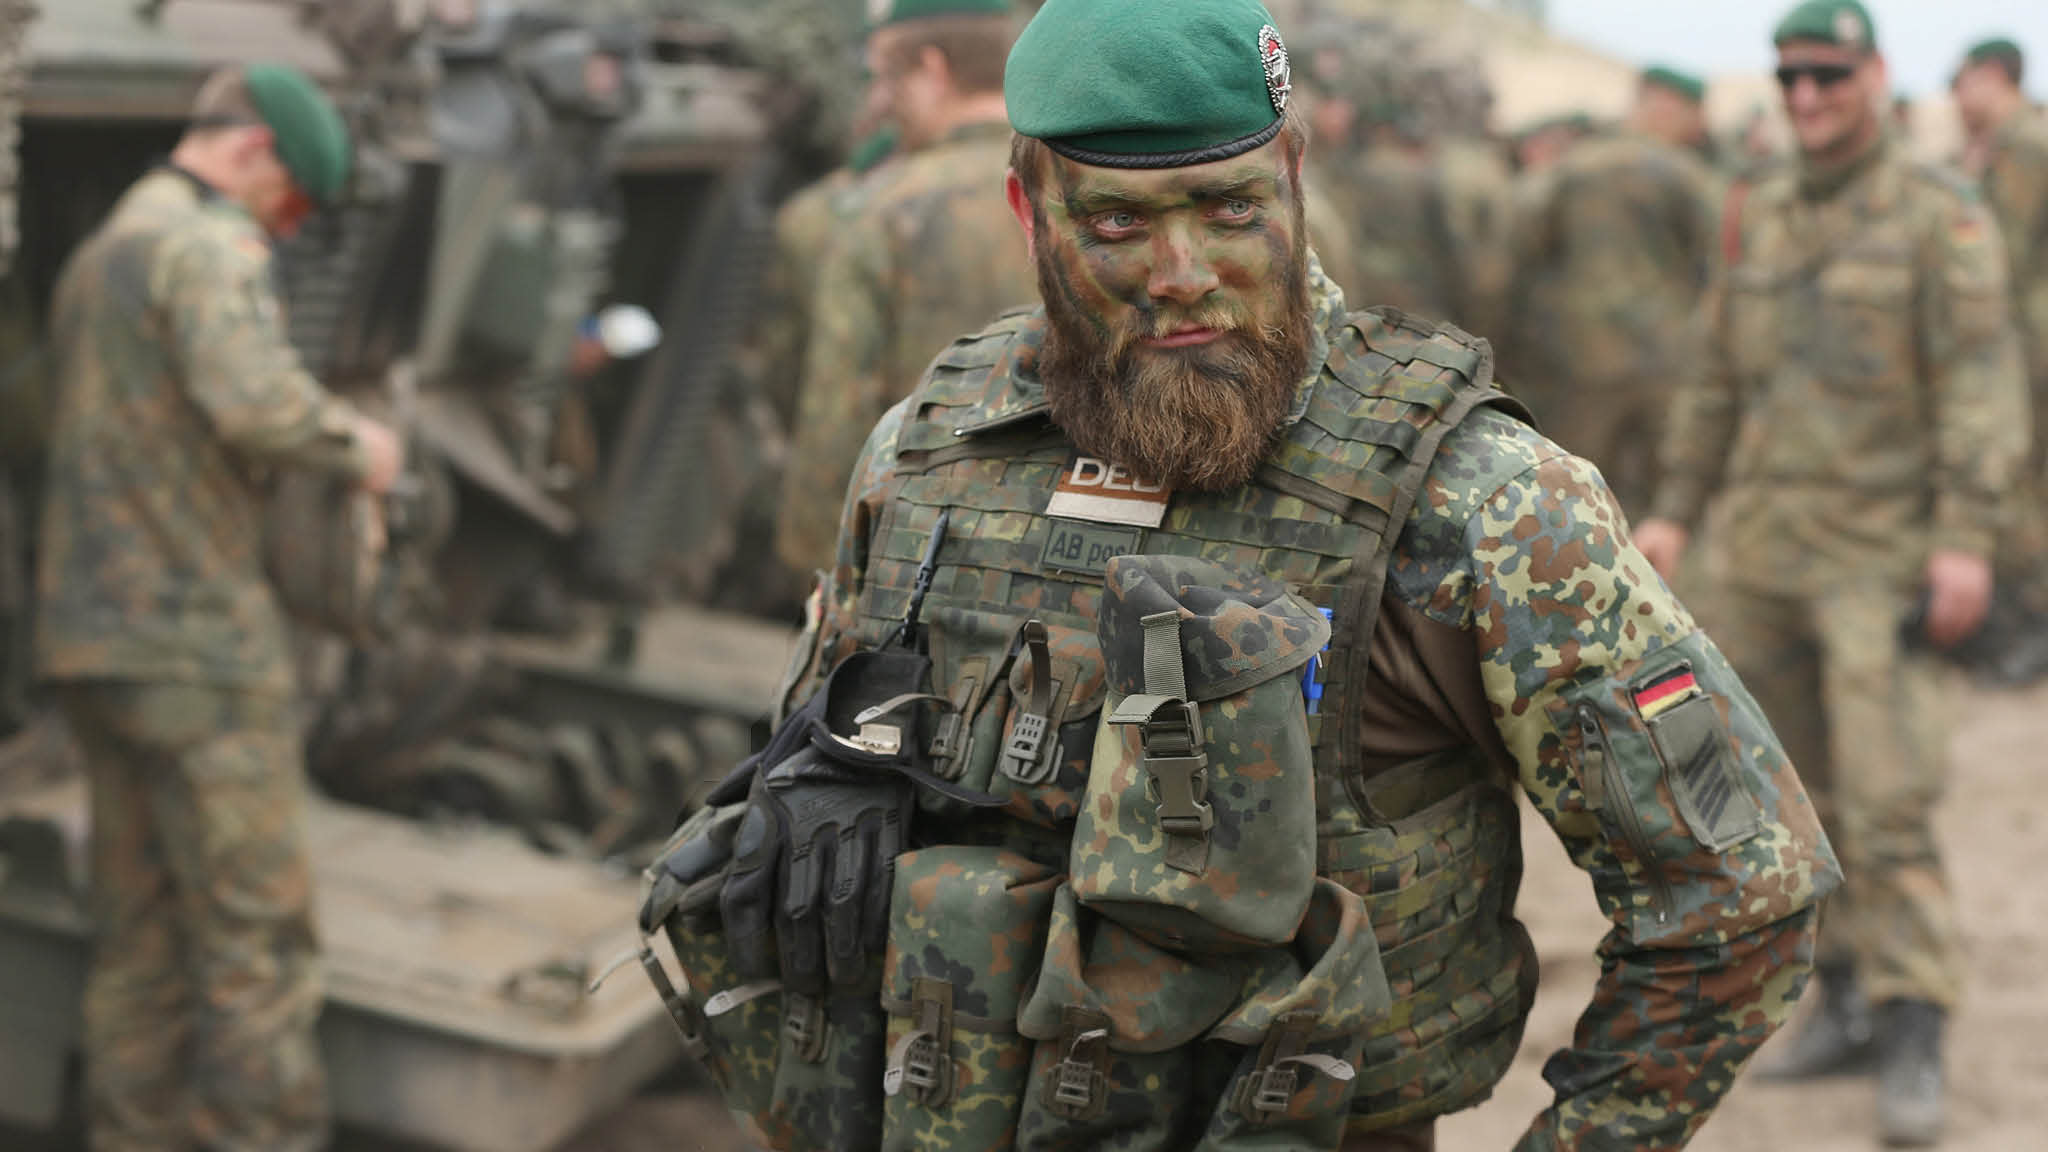 German military: combat ready?